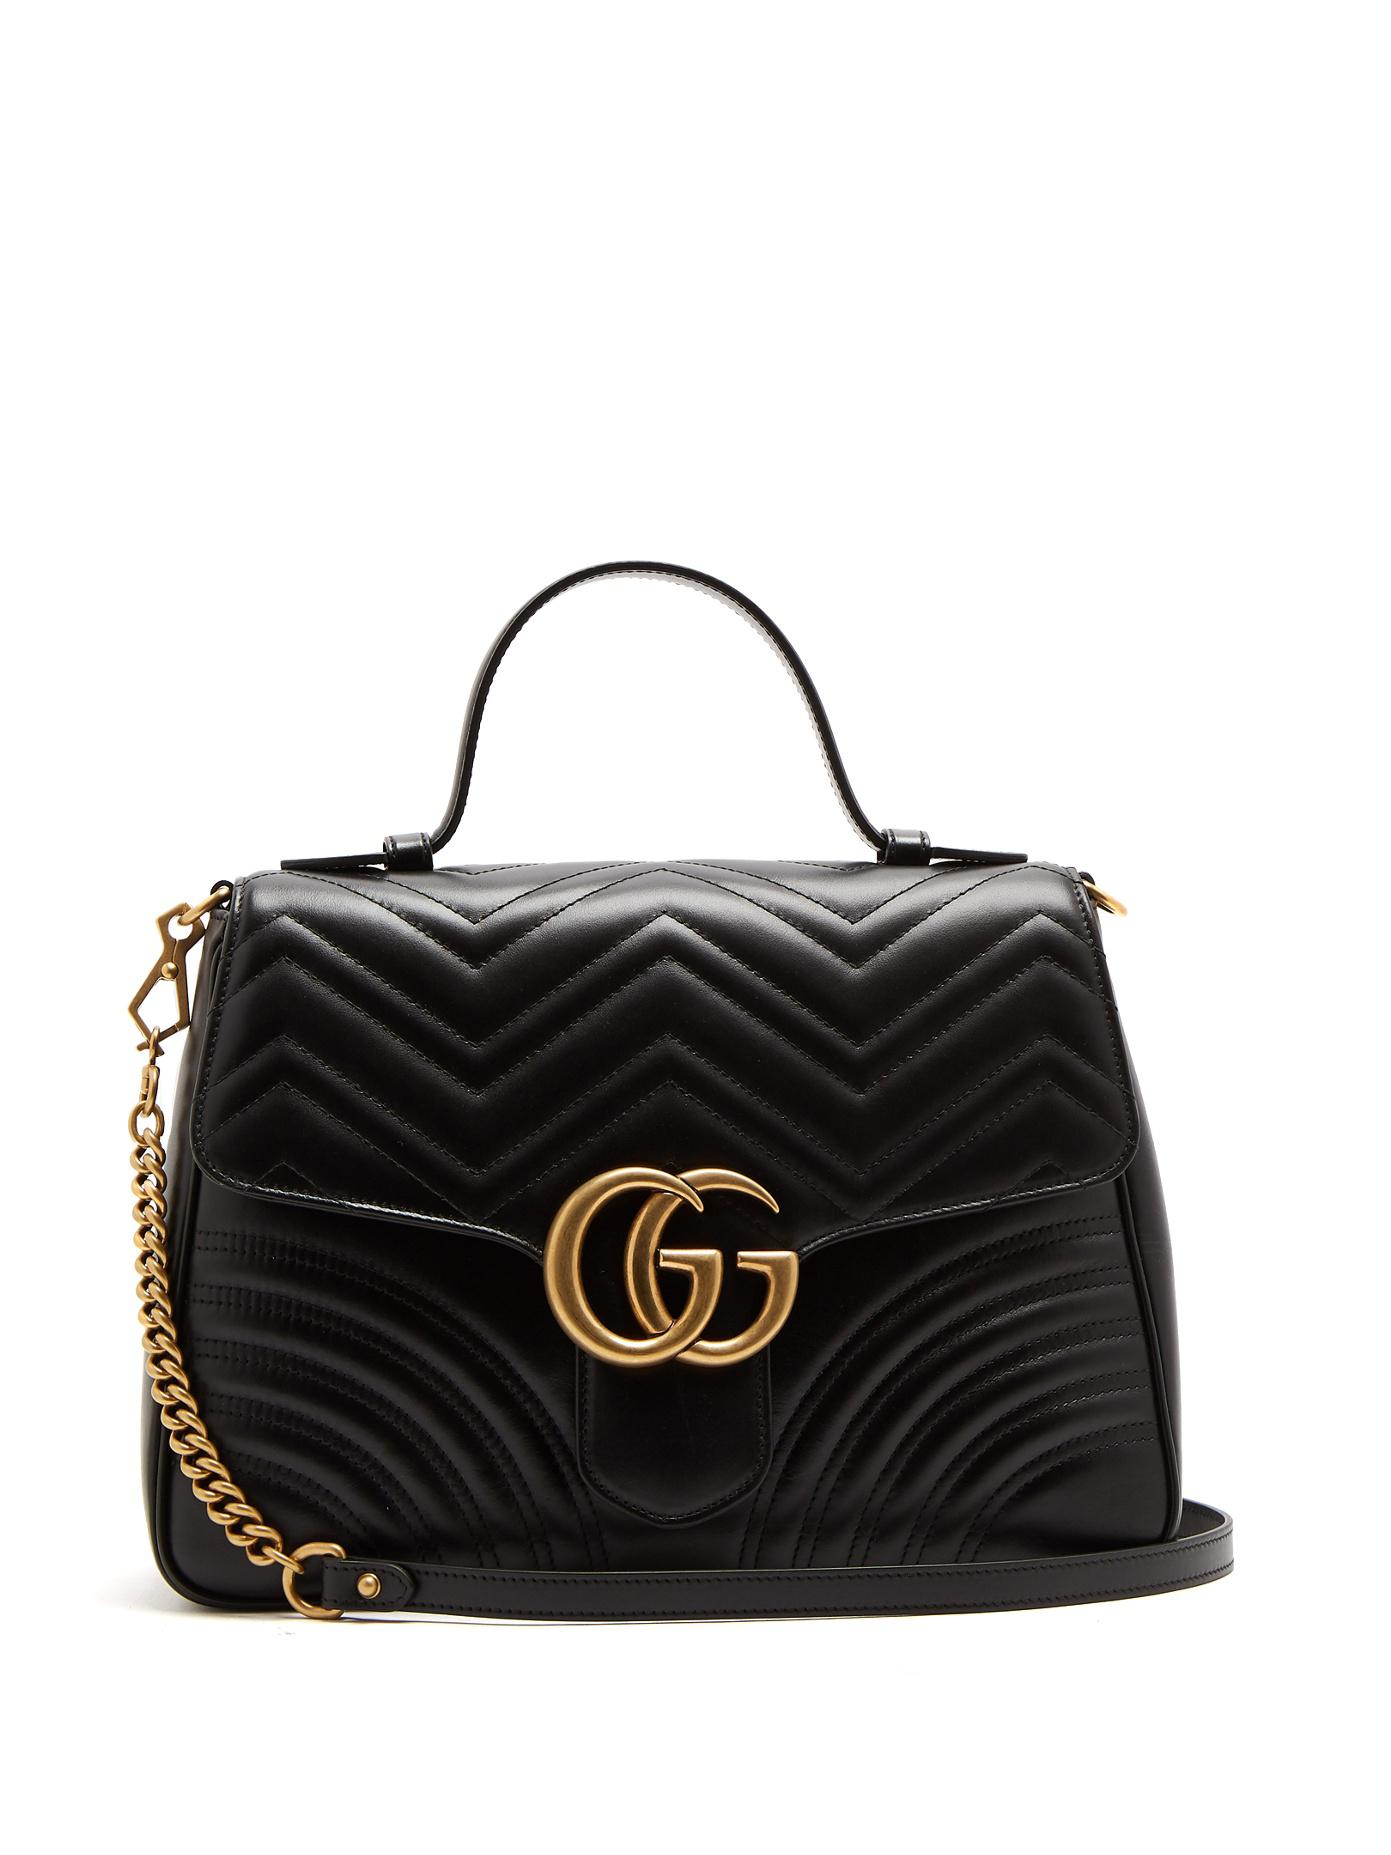 6abb54b7115b7 Gucci Marmont Bag Medium Vs Large. Lyst - Gucci Gg Marmont Medium Quilted-leather  Shoulder-bag in Black ...